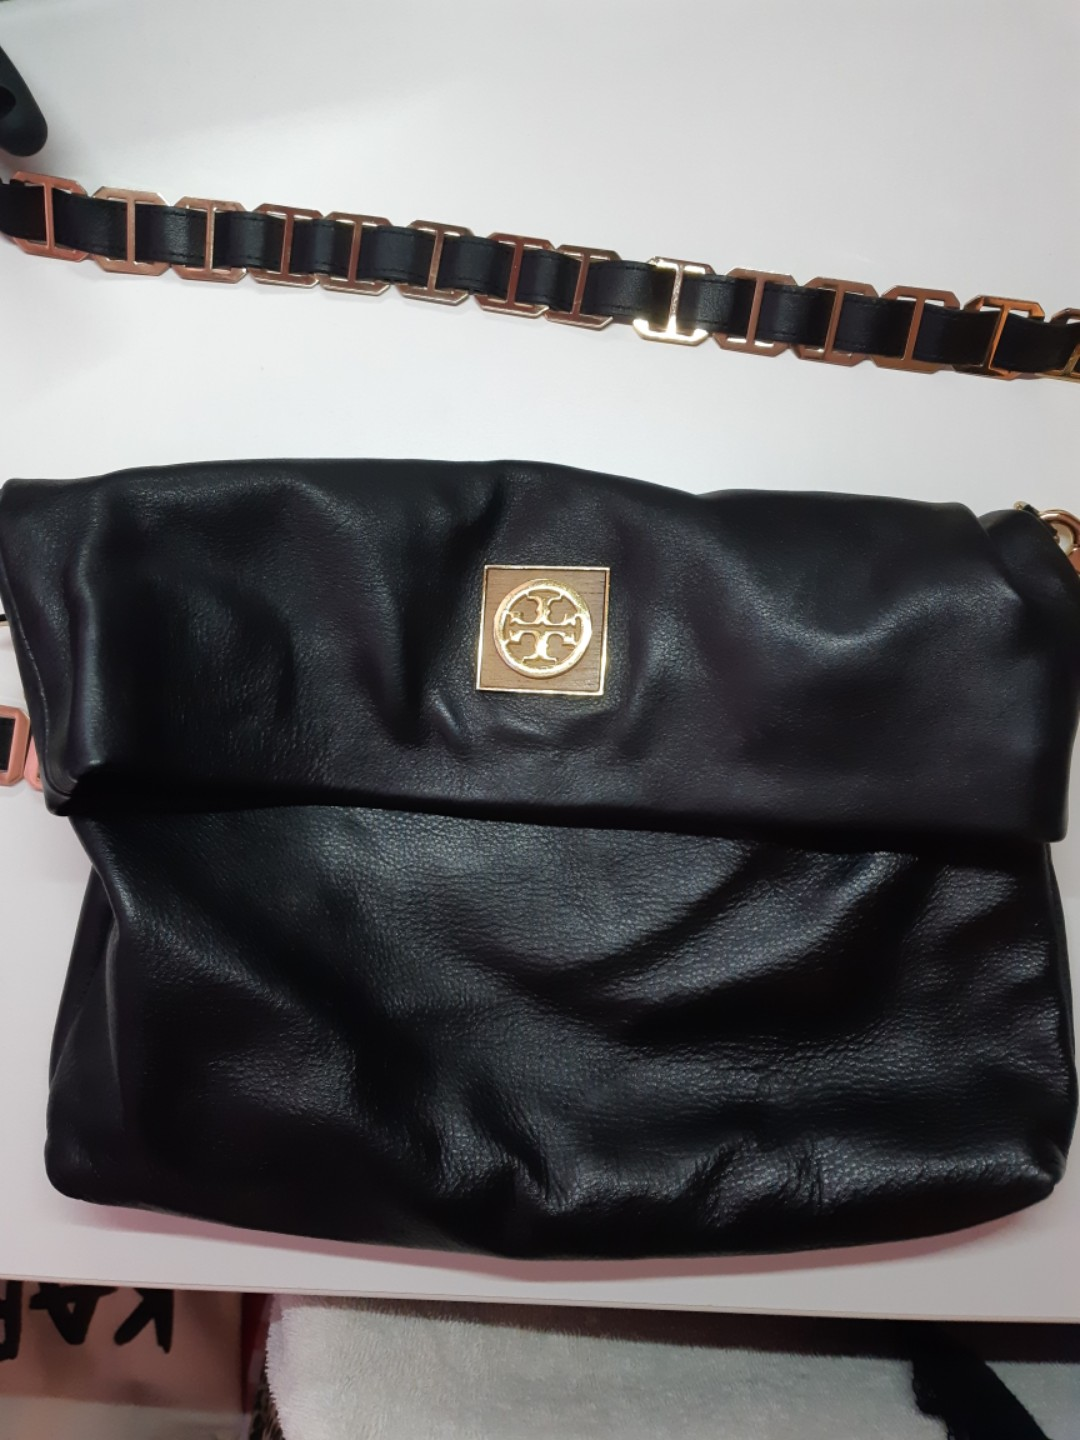 88be9309440 Authentic Tory Burch Leather Flap Crossbody Bag, Black Width 12.75 ...